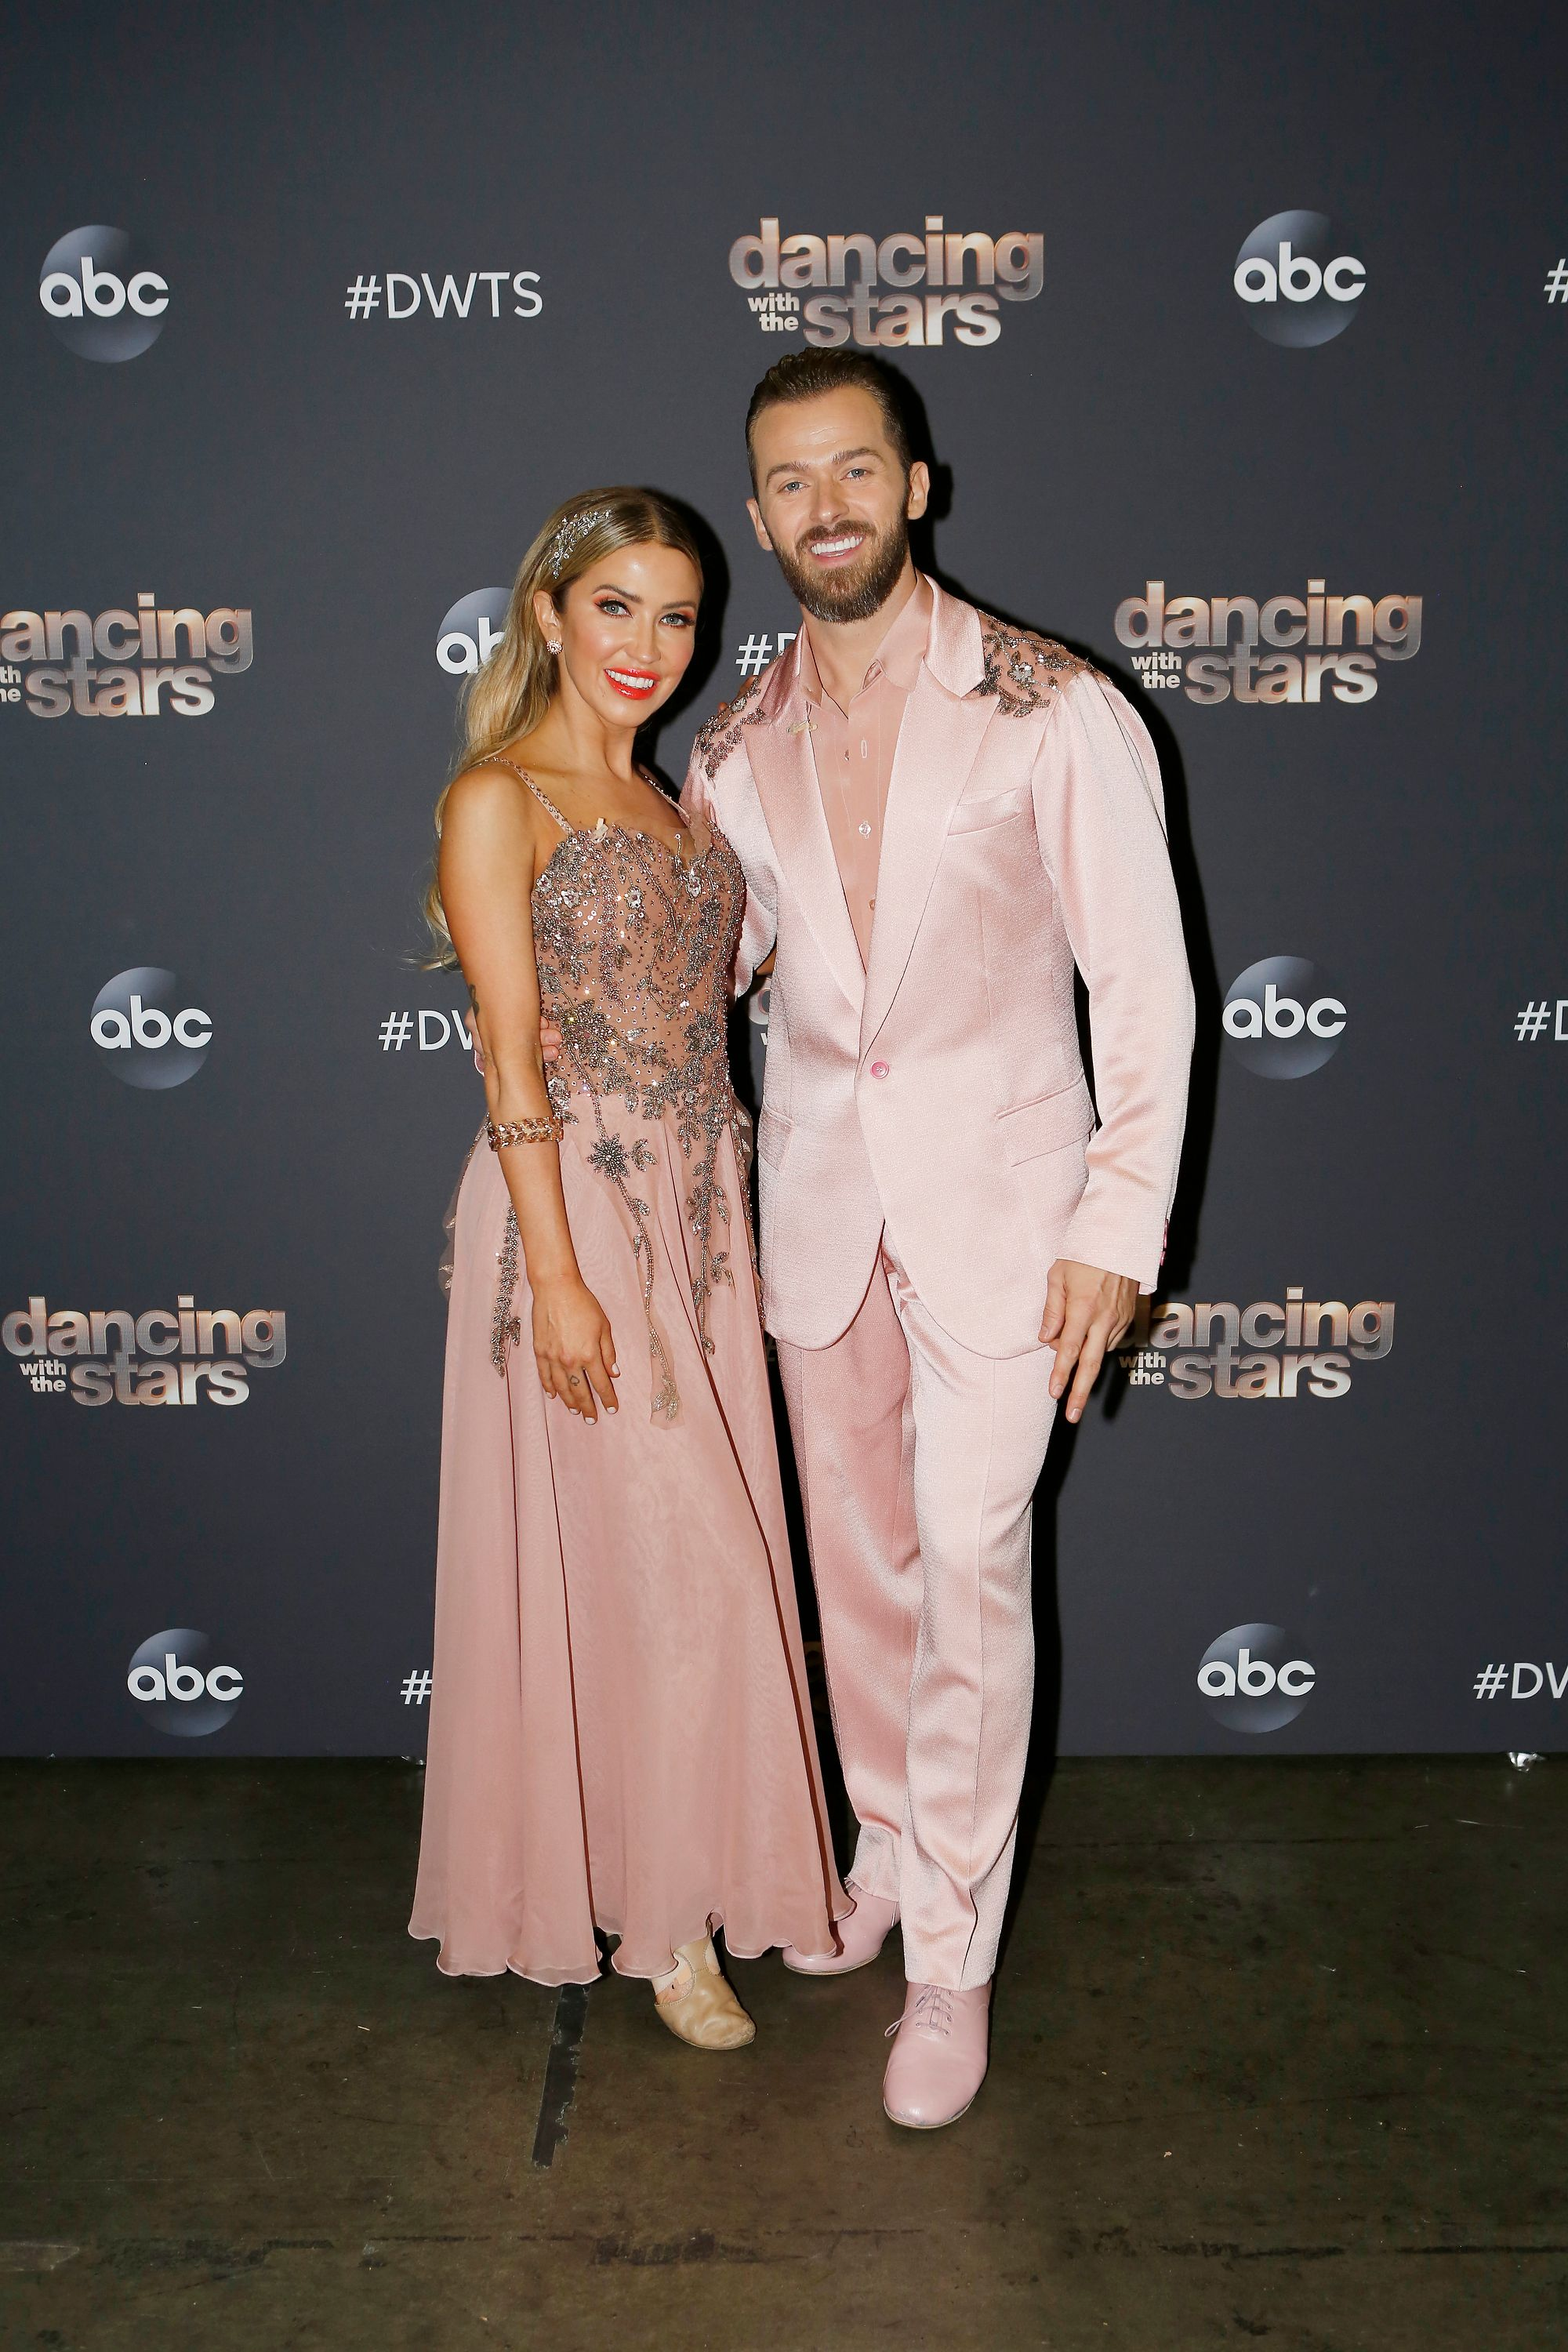 """Kaitlyn Bristowe andArtem Chigvintsev on the first elimination round of """"Dancing with the Stars"""" on September 22, 2020 